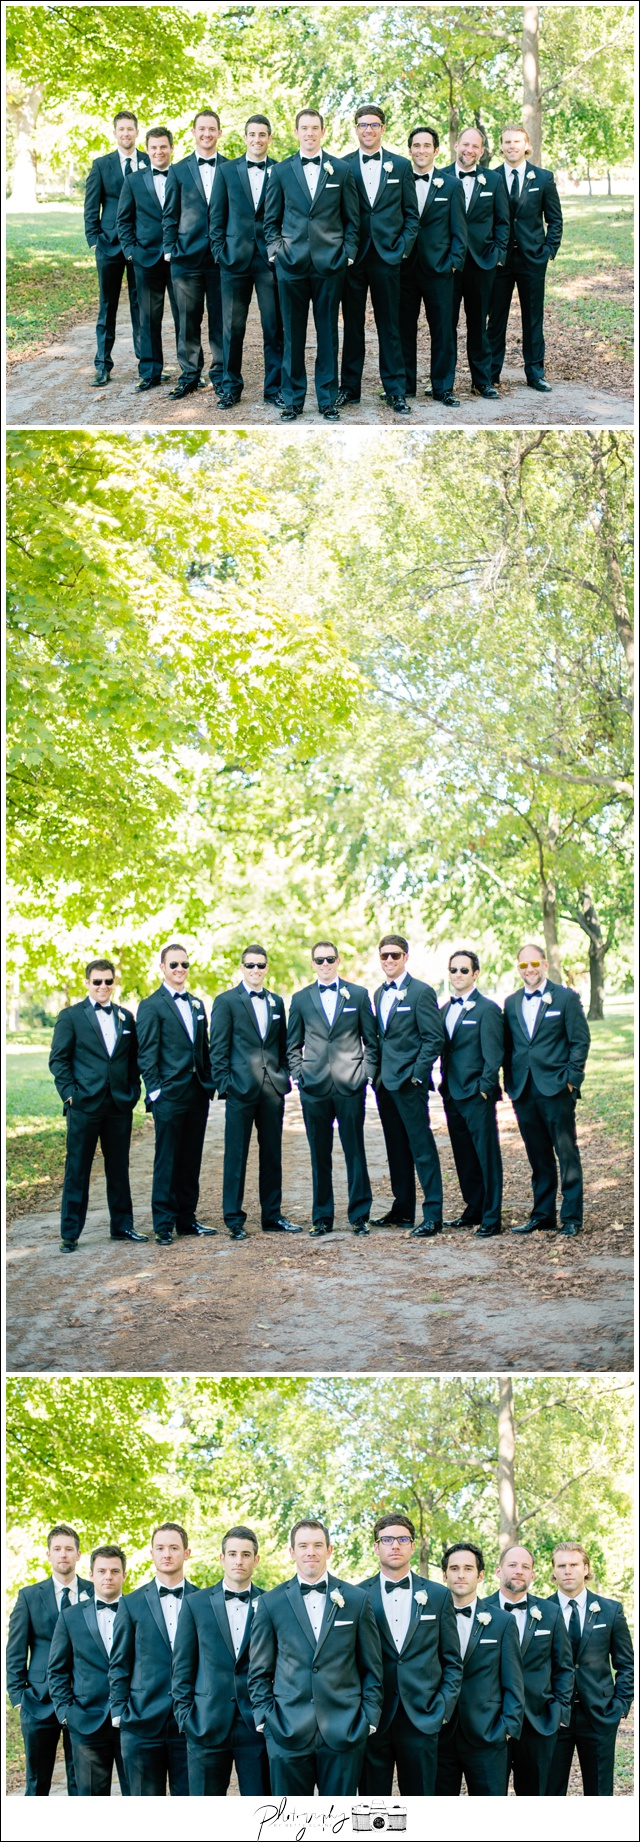 19-Groom-Groomsmen-Black-Michael-Kors-Suits-Seattle-Wedding-Photographer-Photography-by-Betty-Elaine